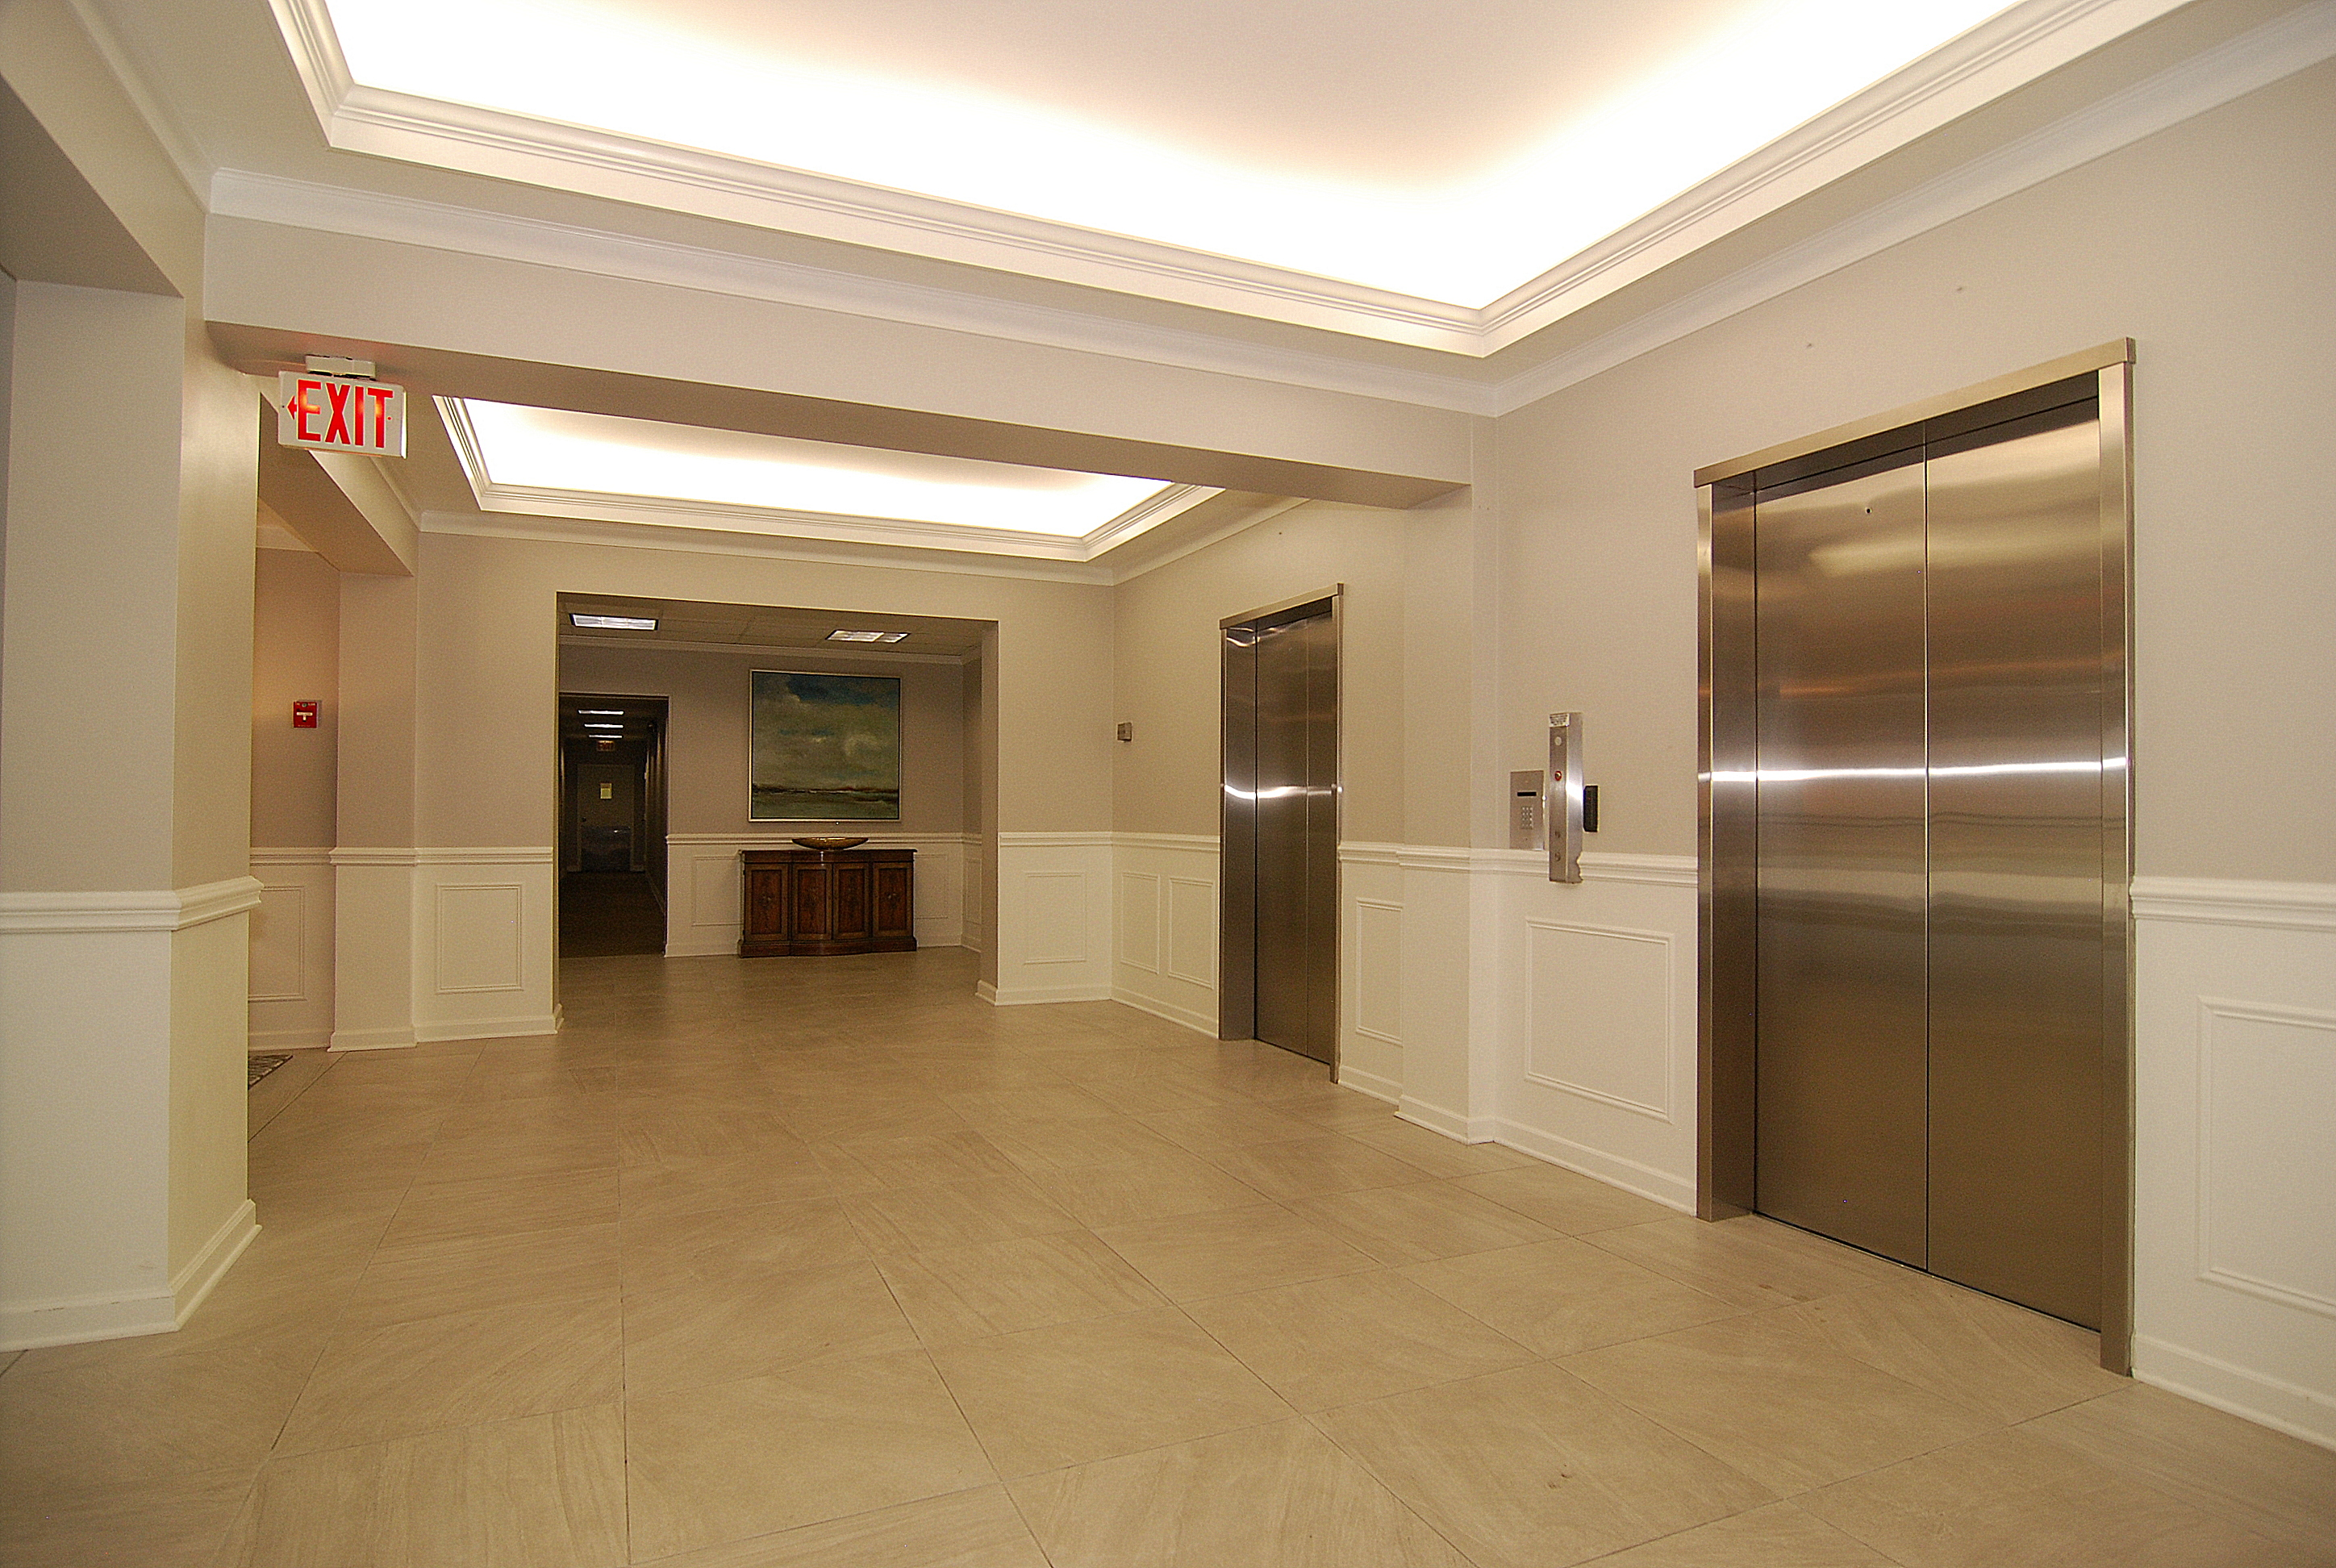 Middleborough Offices - Elevator Lobby and hallway leading to Offices on 1st Floor and Commercial Kitchen